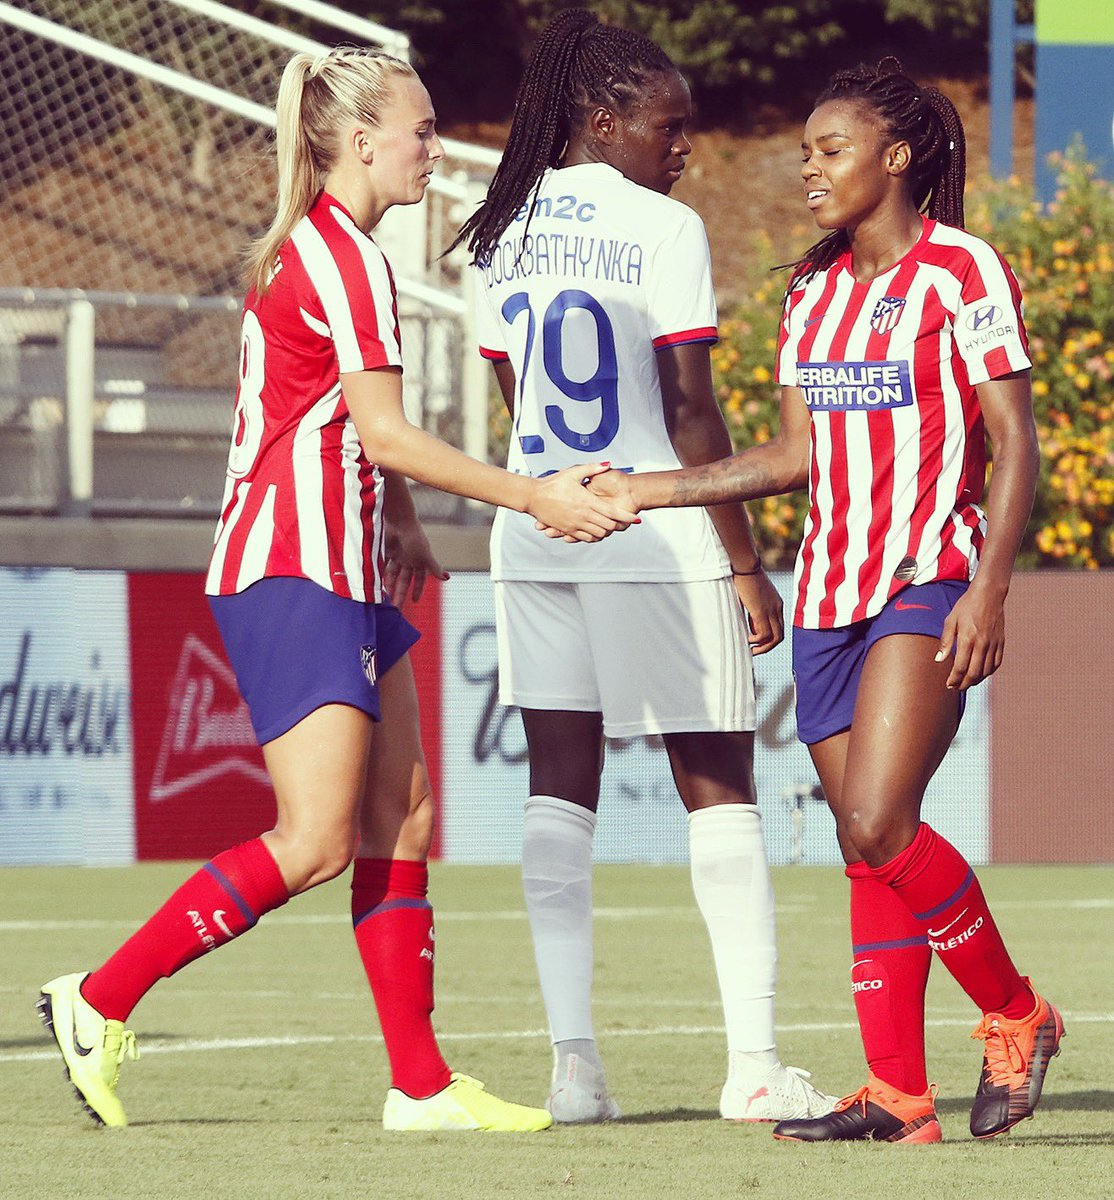 Great run out v Lyon yesterday, Gutted to lose in the last minute..  but proud of the whole teams performance! Onto the next one...  #AúpaAtleti<br>http://pic.twitter.com/5daeiEw2y9